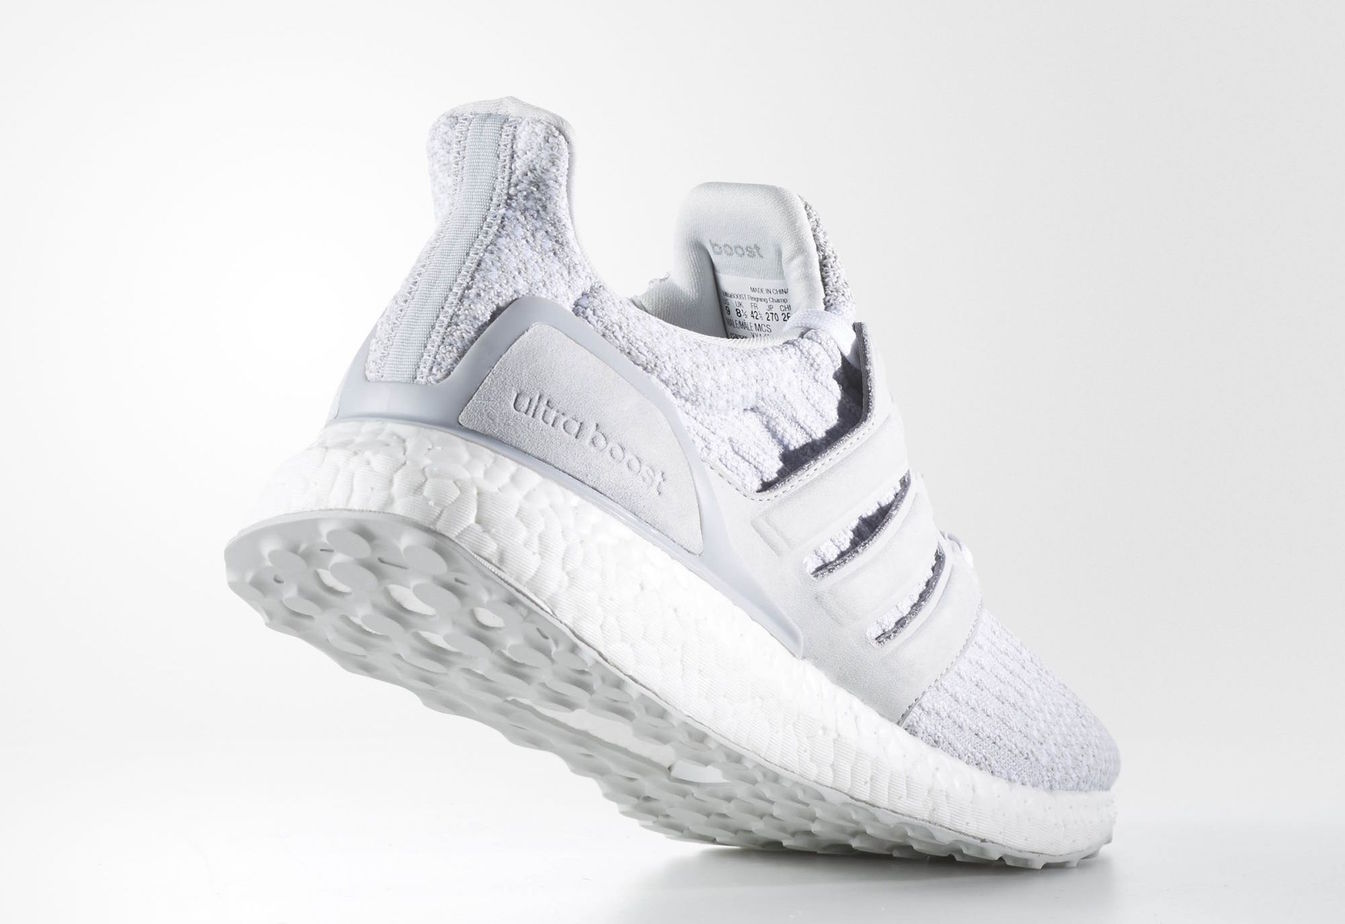 Buy UA Ultra Boost 3.0 Grey White at Wholesale Price Sophia